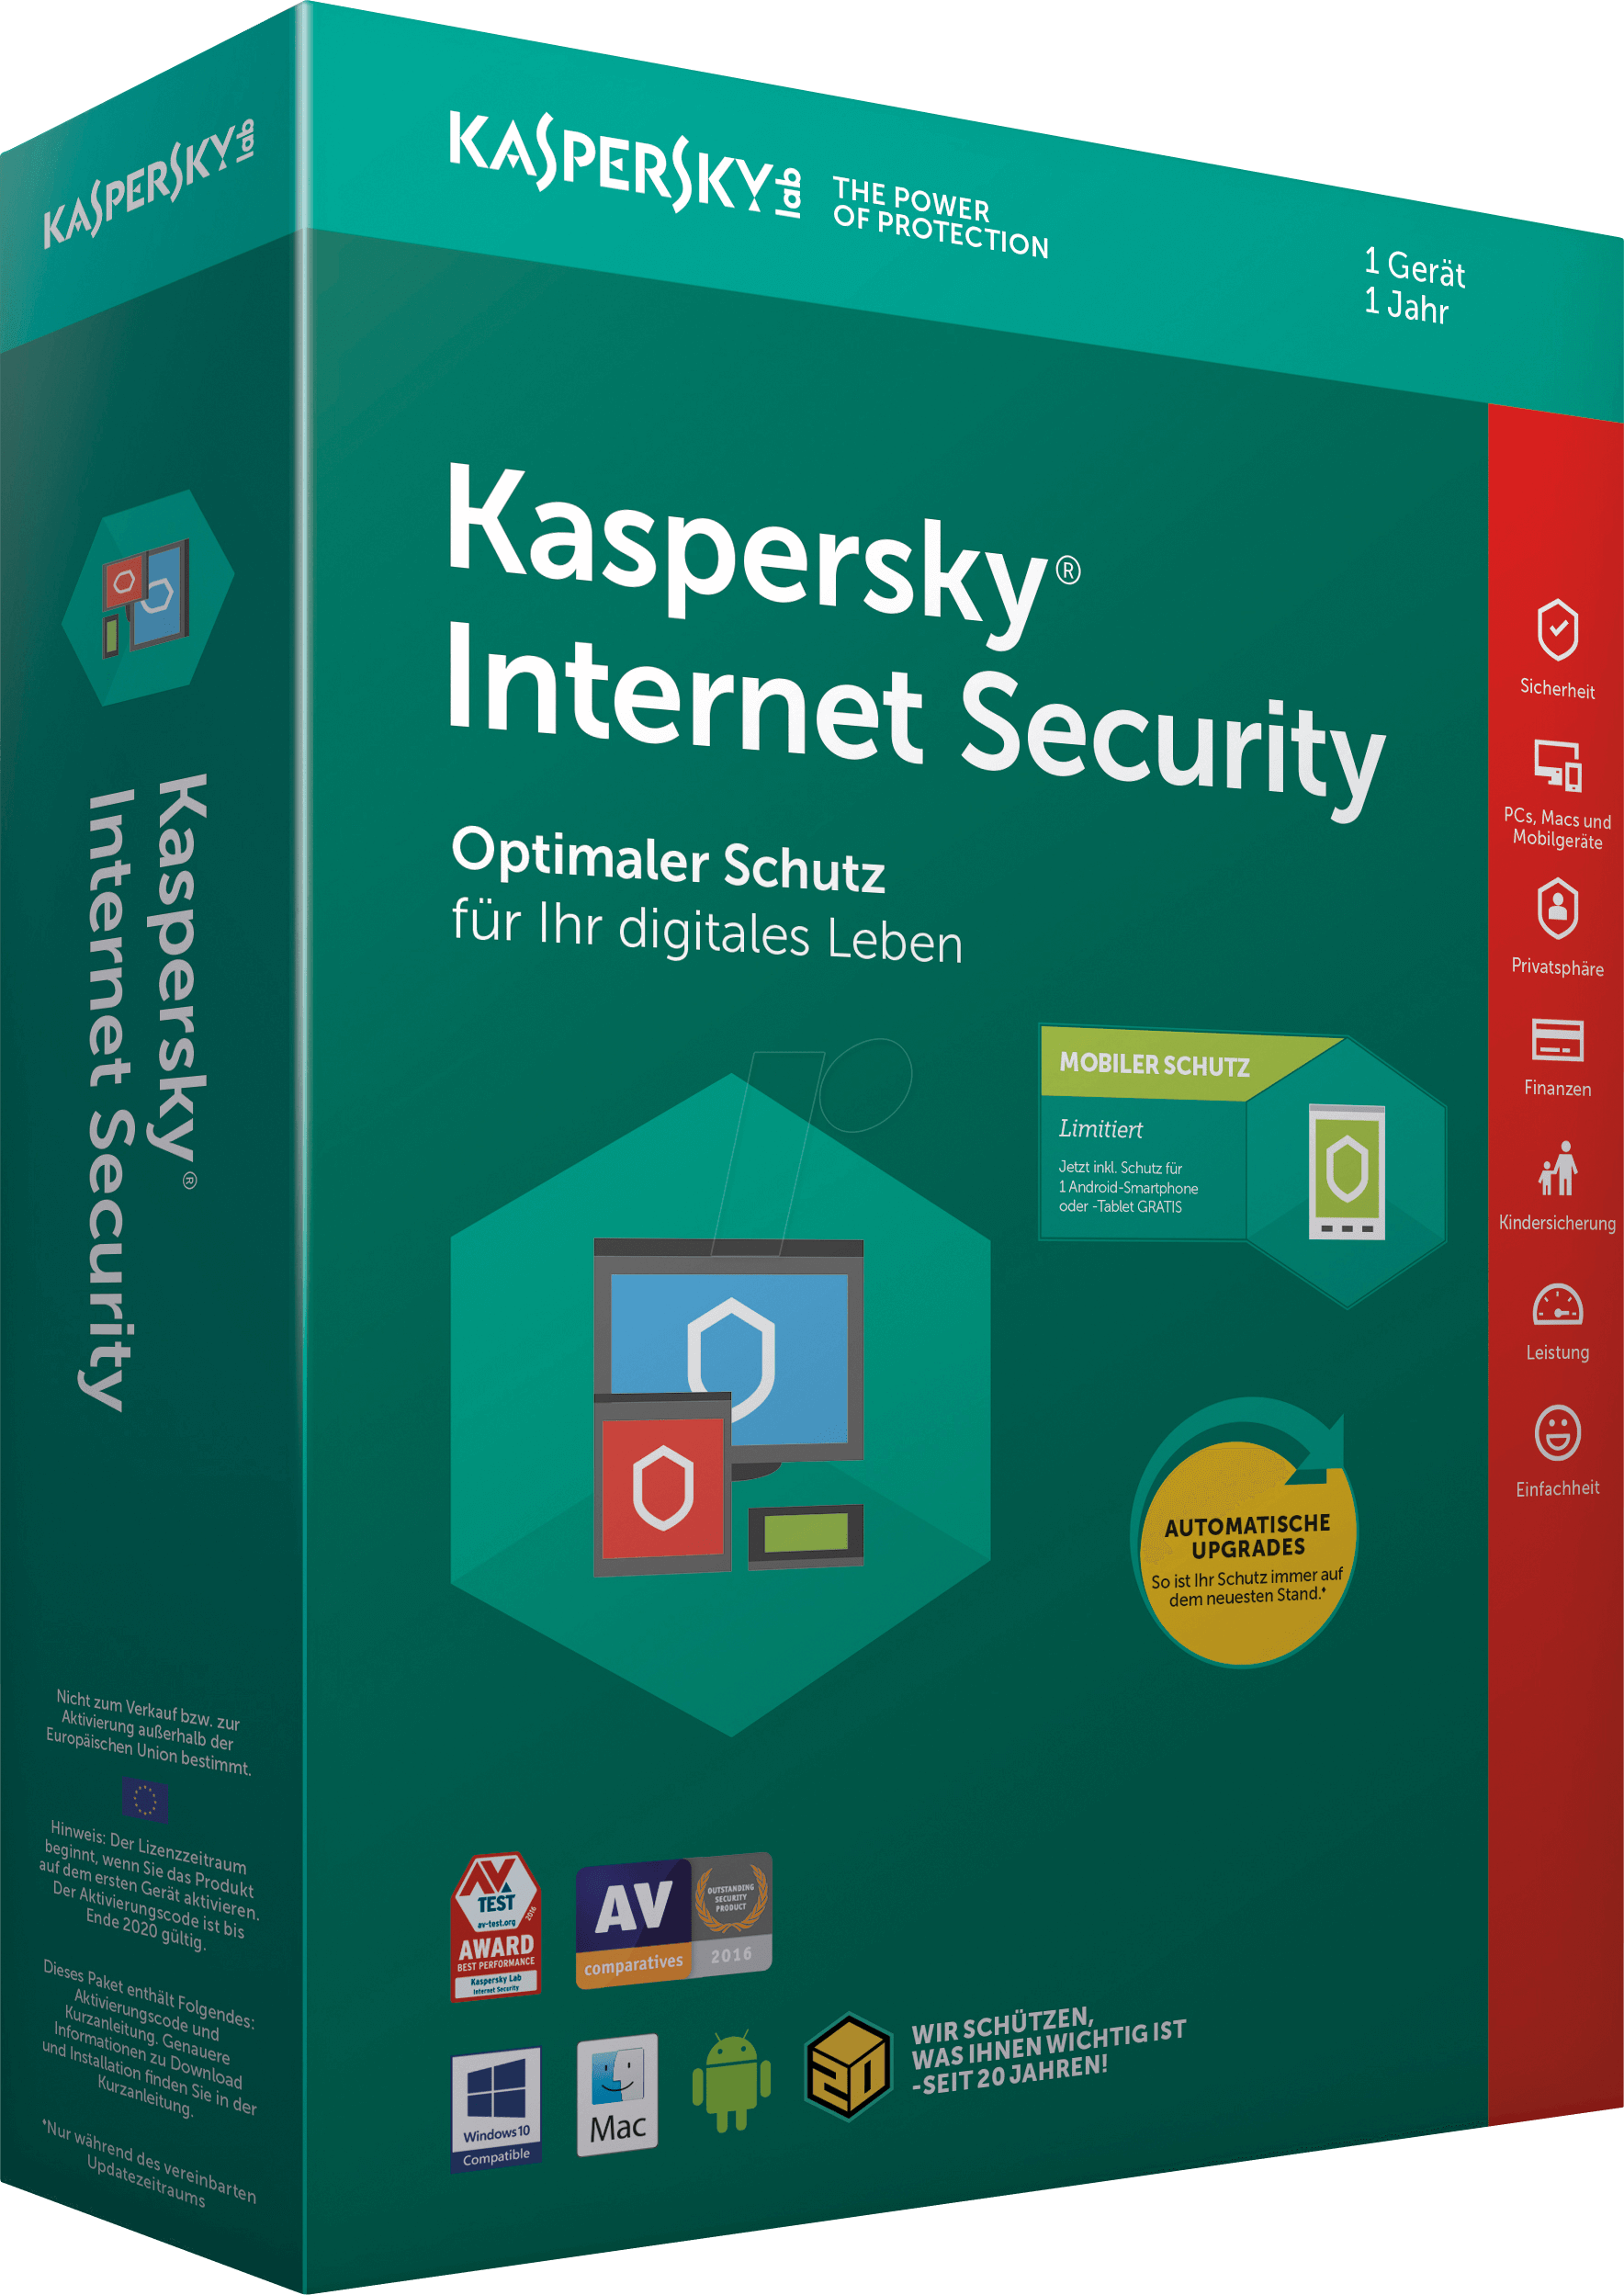 https://cdn-reichelt.de/bilder/web/xxl_ws/G500/KASPERSKY_IS2018_AND_01.png